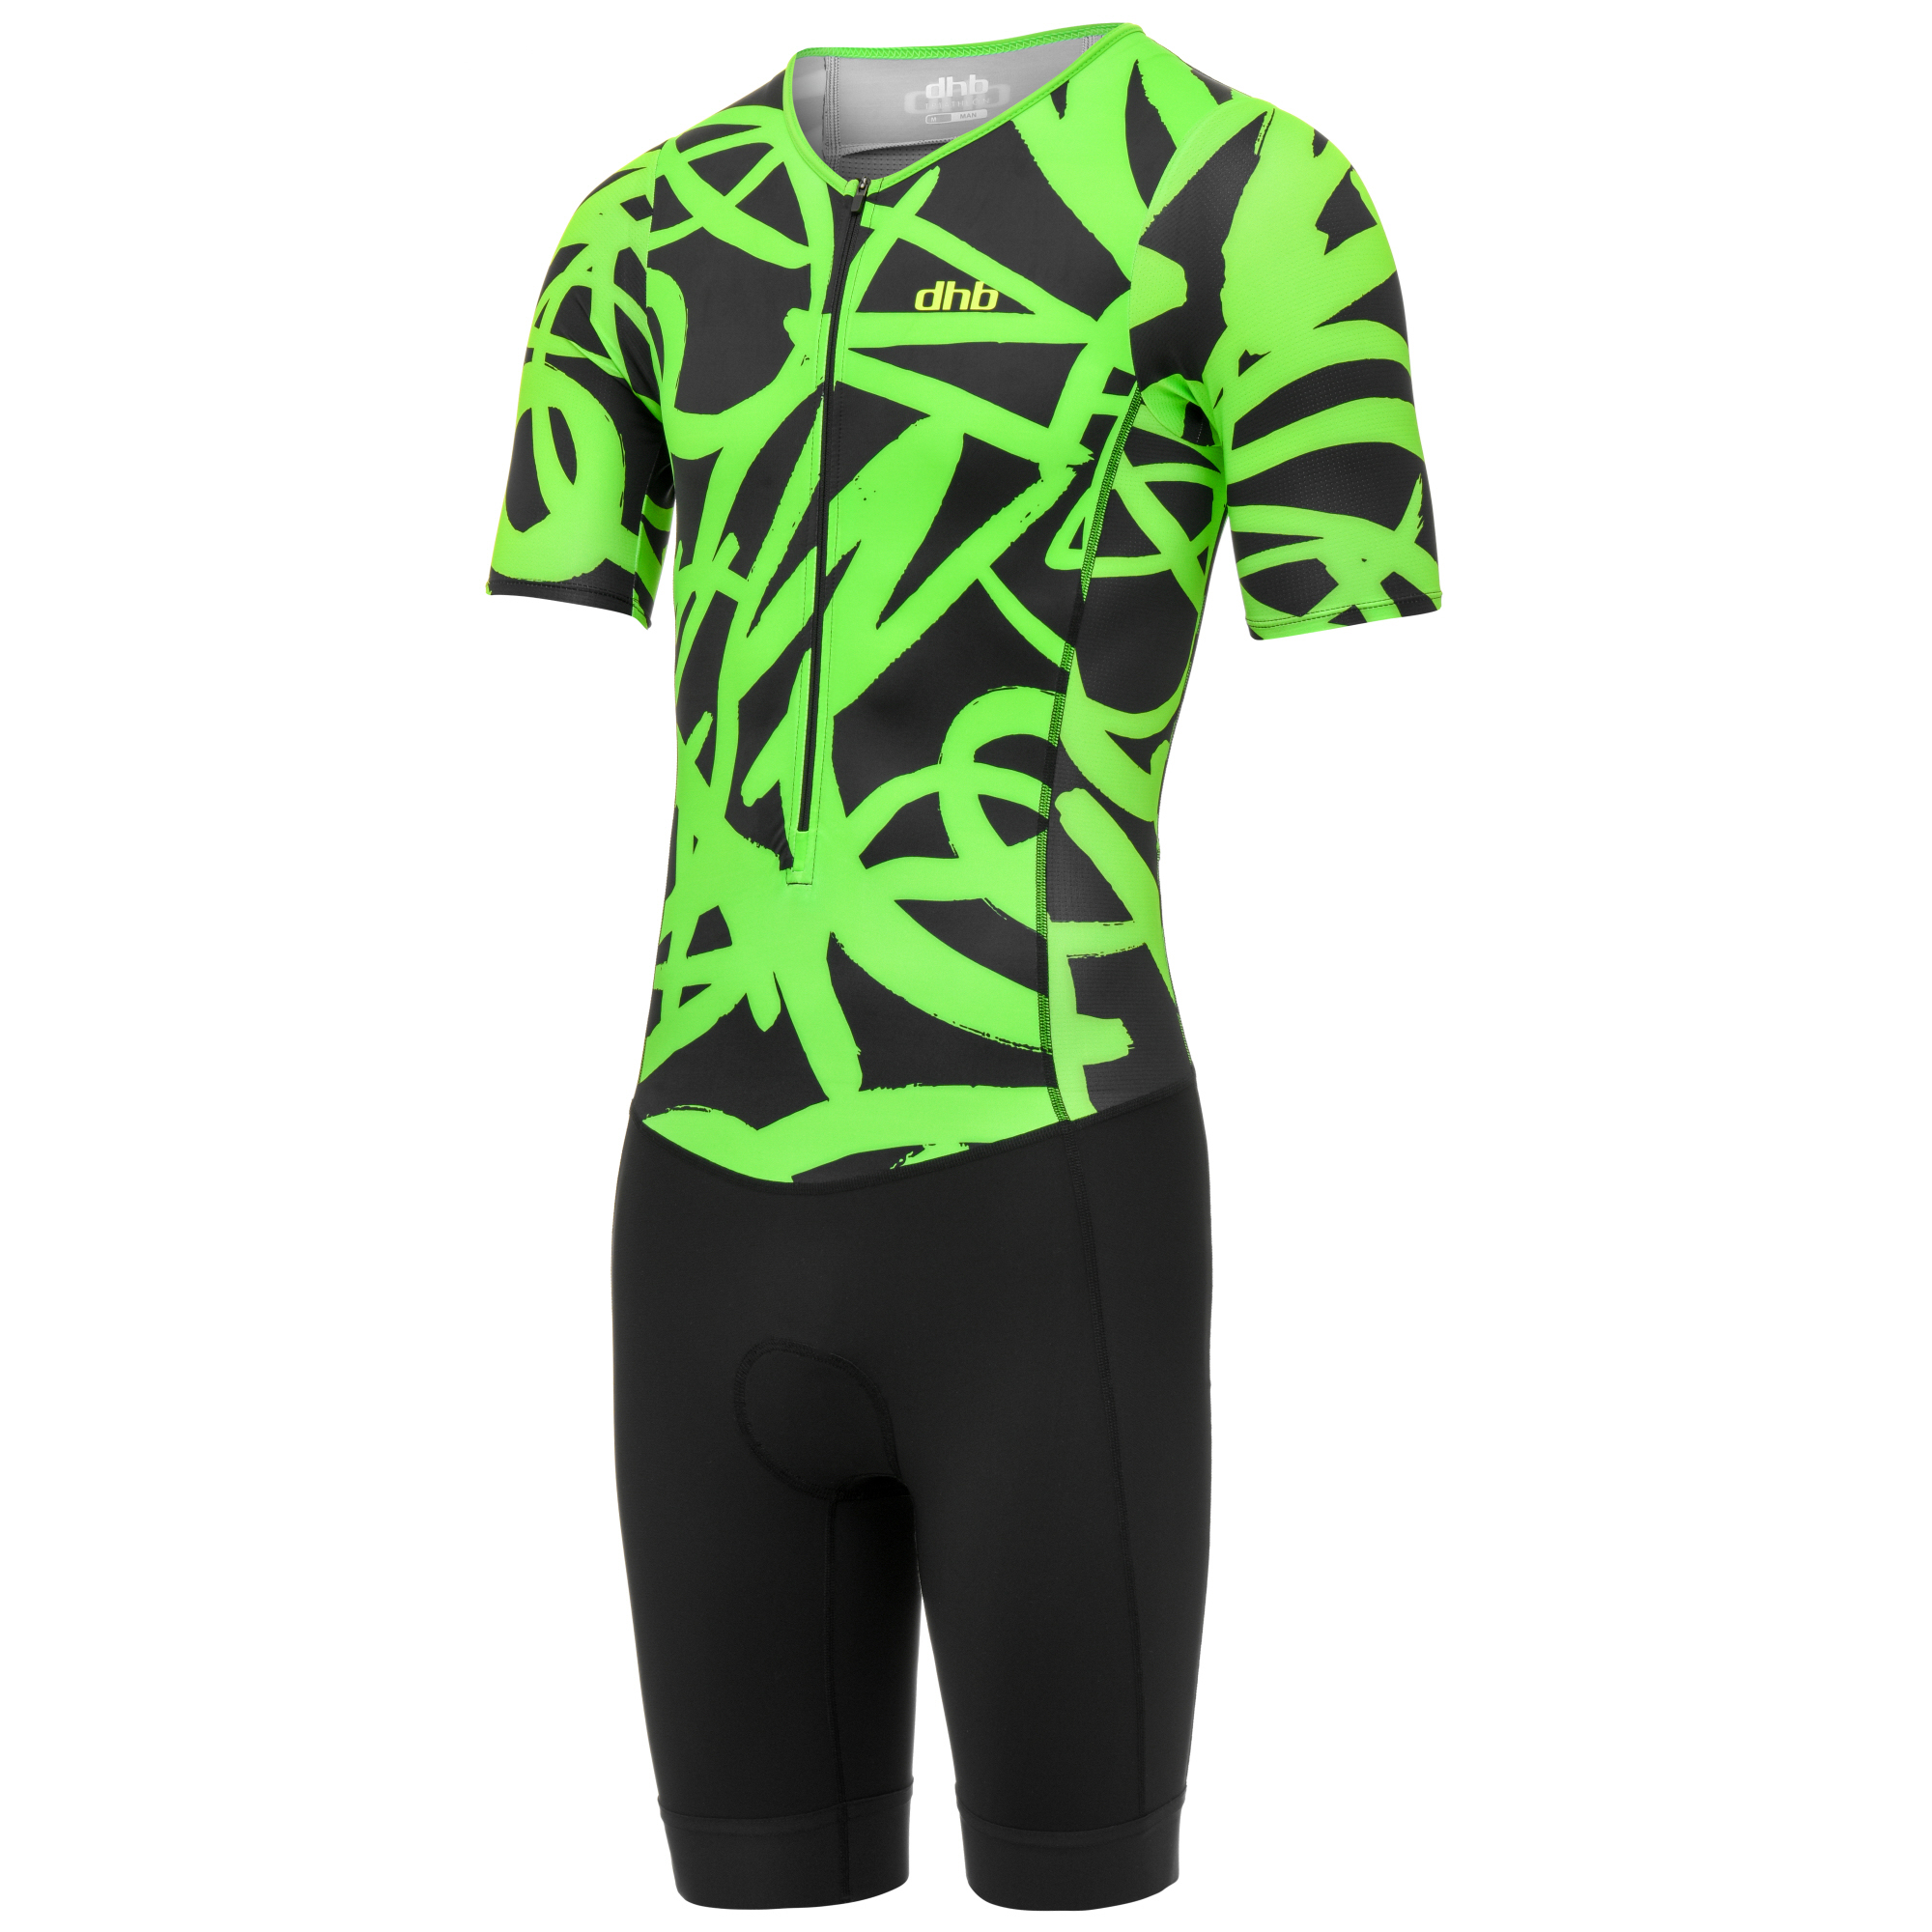 dhb Blok Short Sleeve Tri Suit - JAZZ | swim_clothes